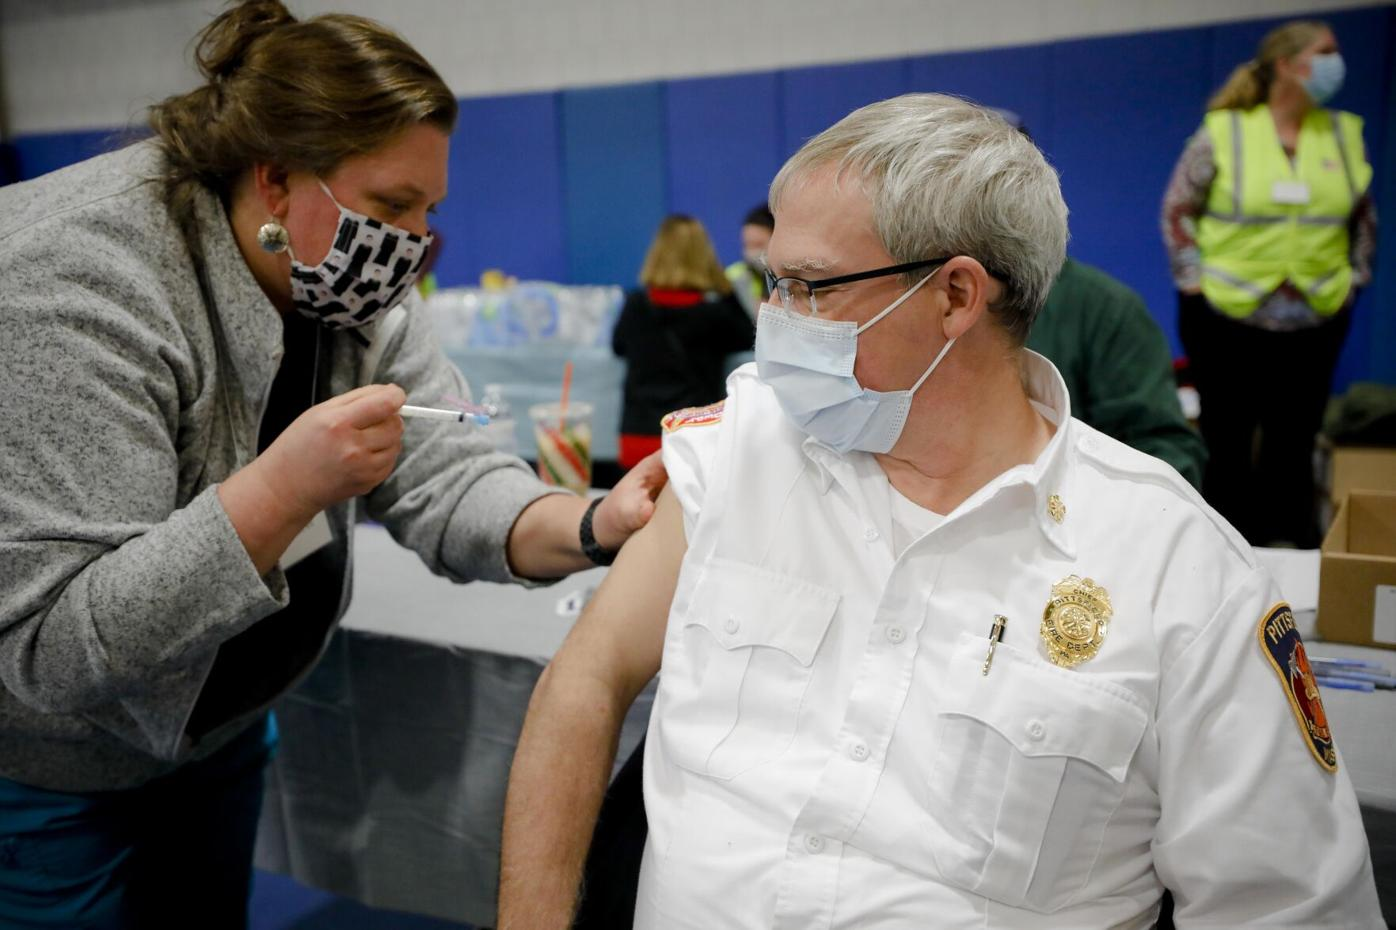 First Responder Vaccines in Pittsfield